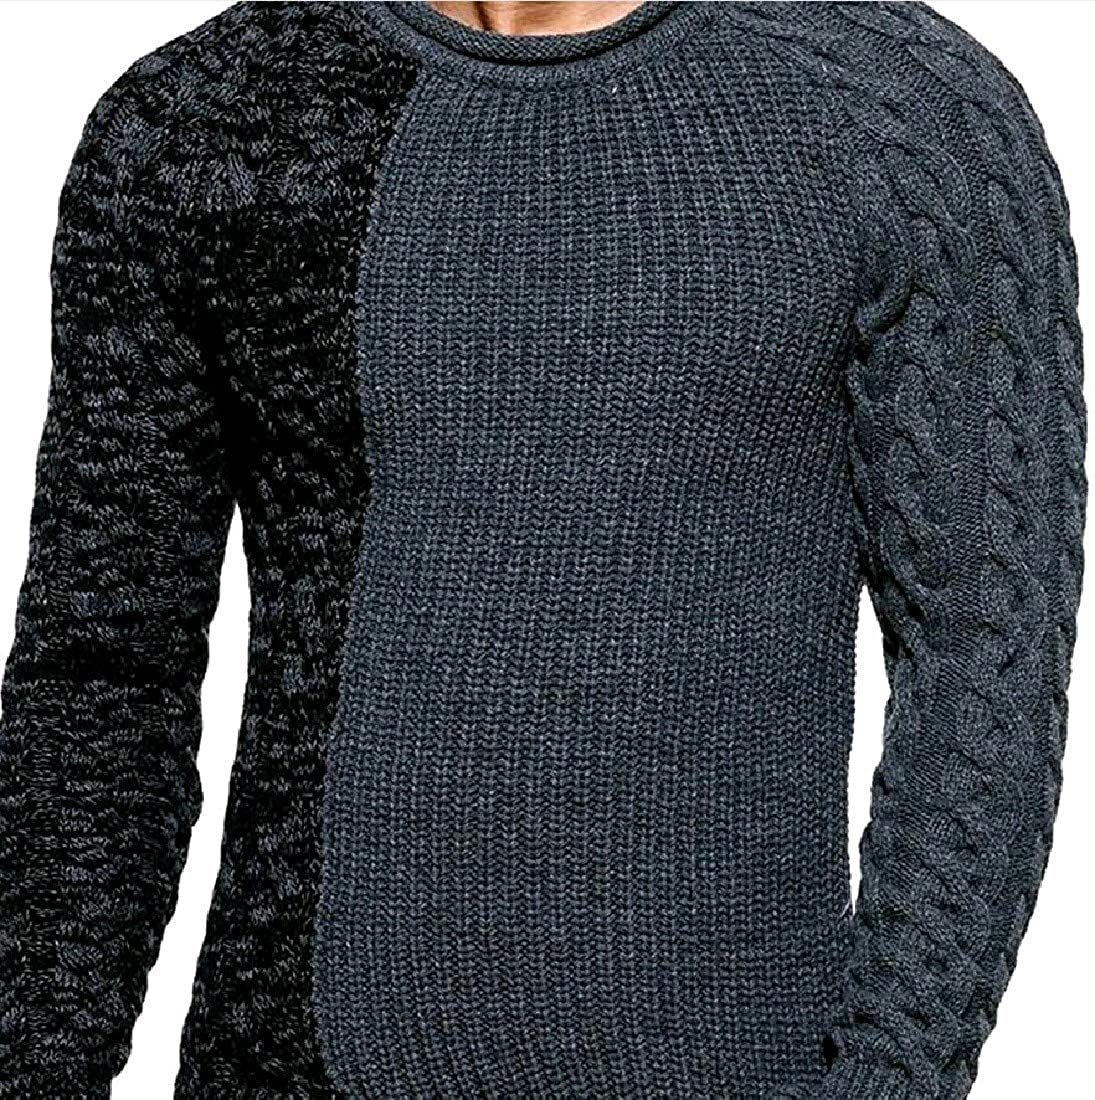 Abetteric Mens Marled Cable Woven Patched Plus Size Tshirt Sweater